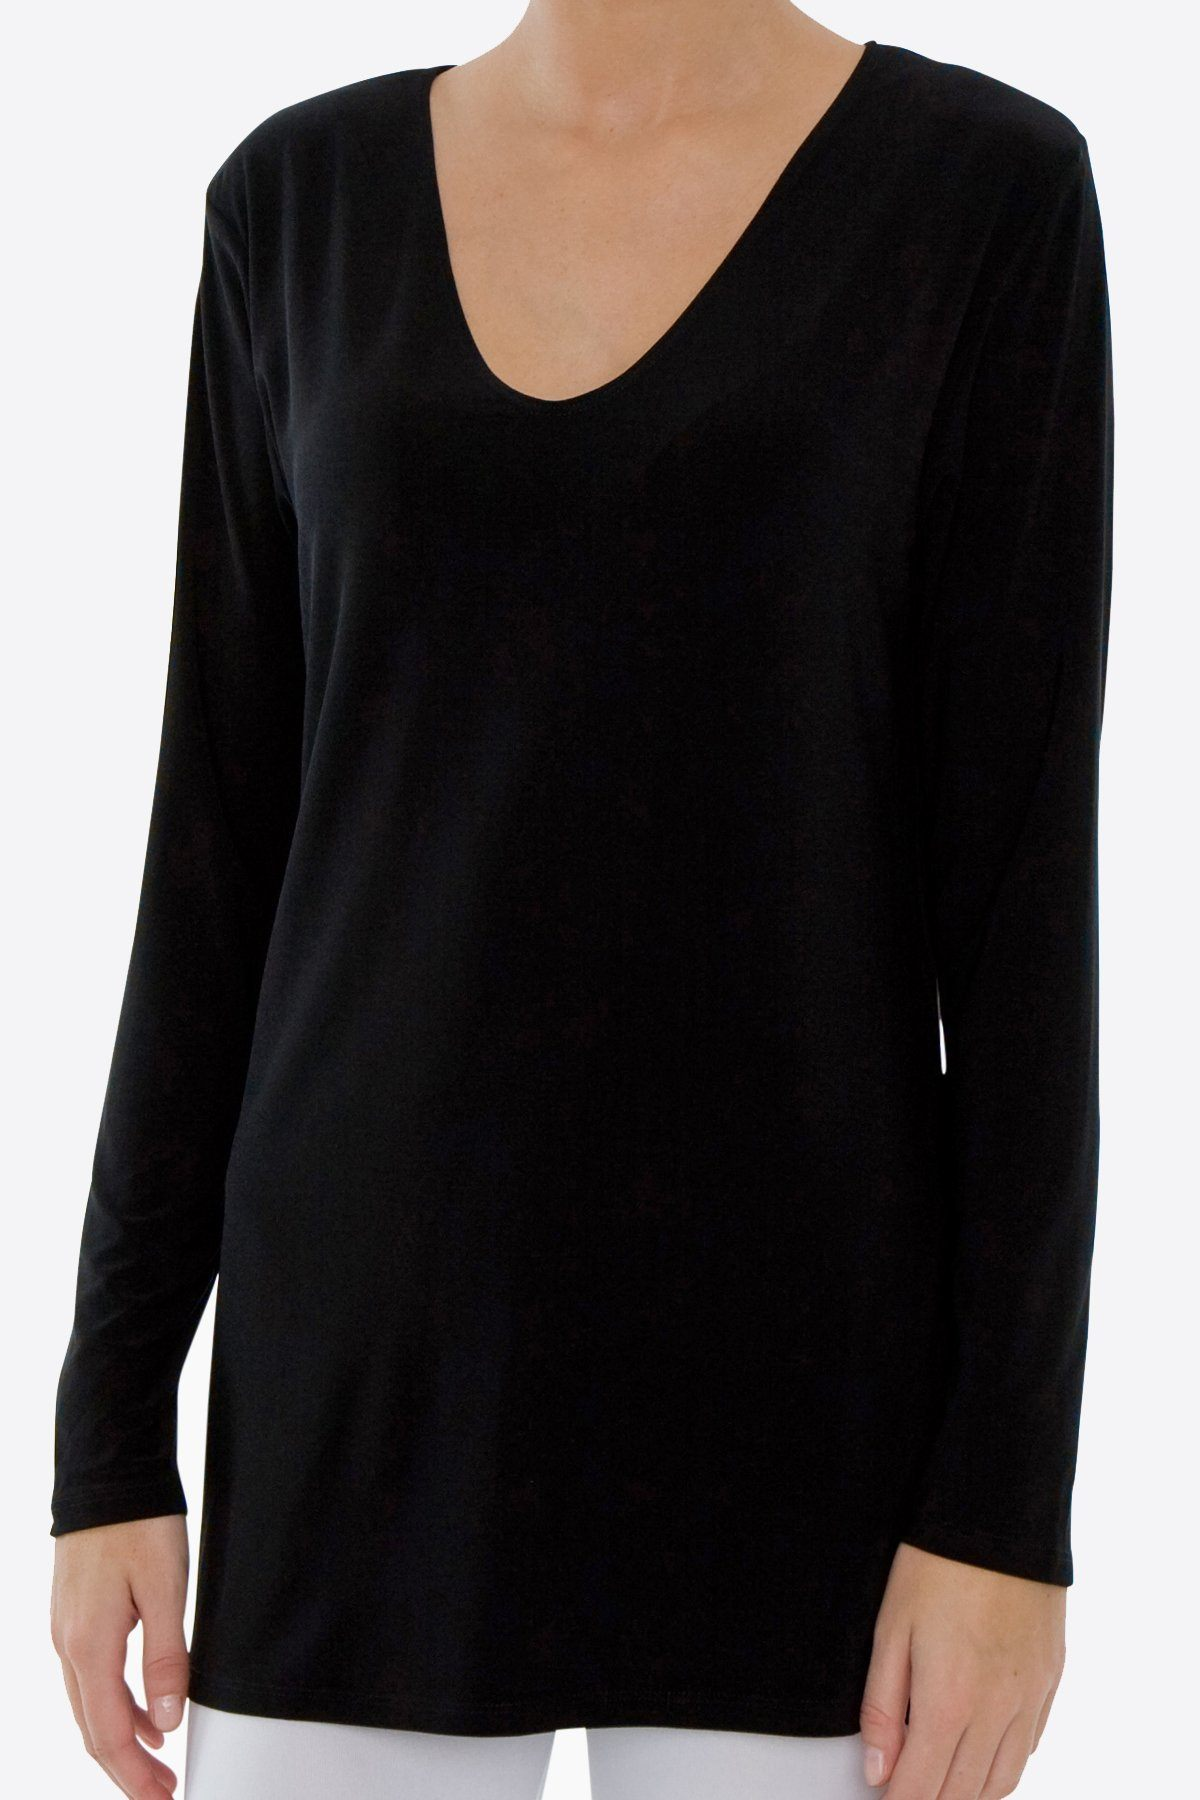 Long Sleeve Side Splits V-Neck Top black